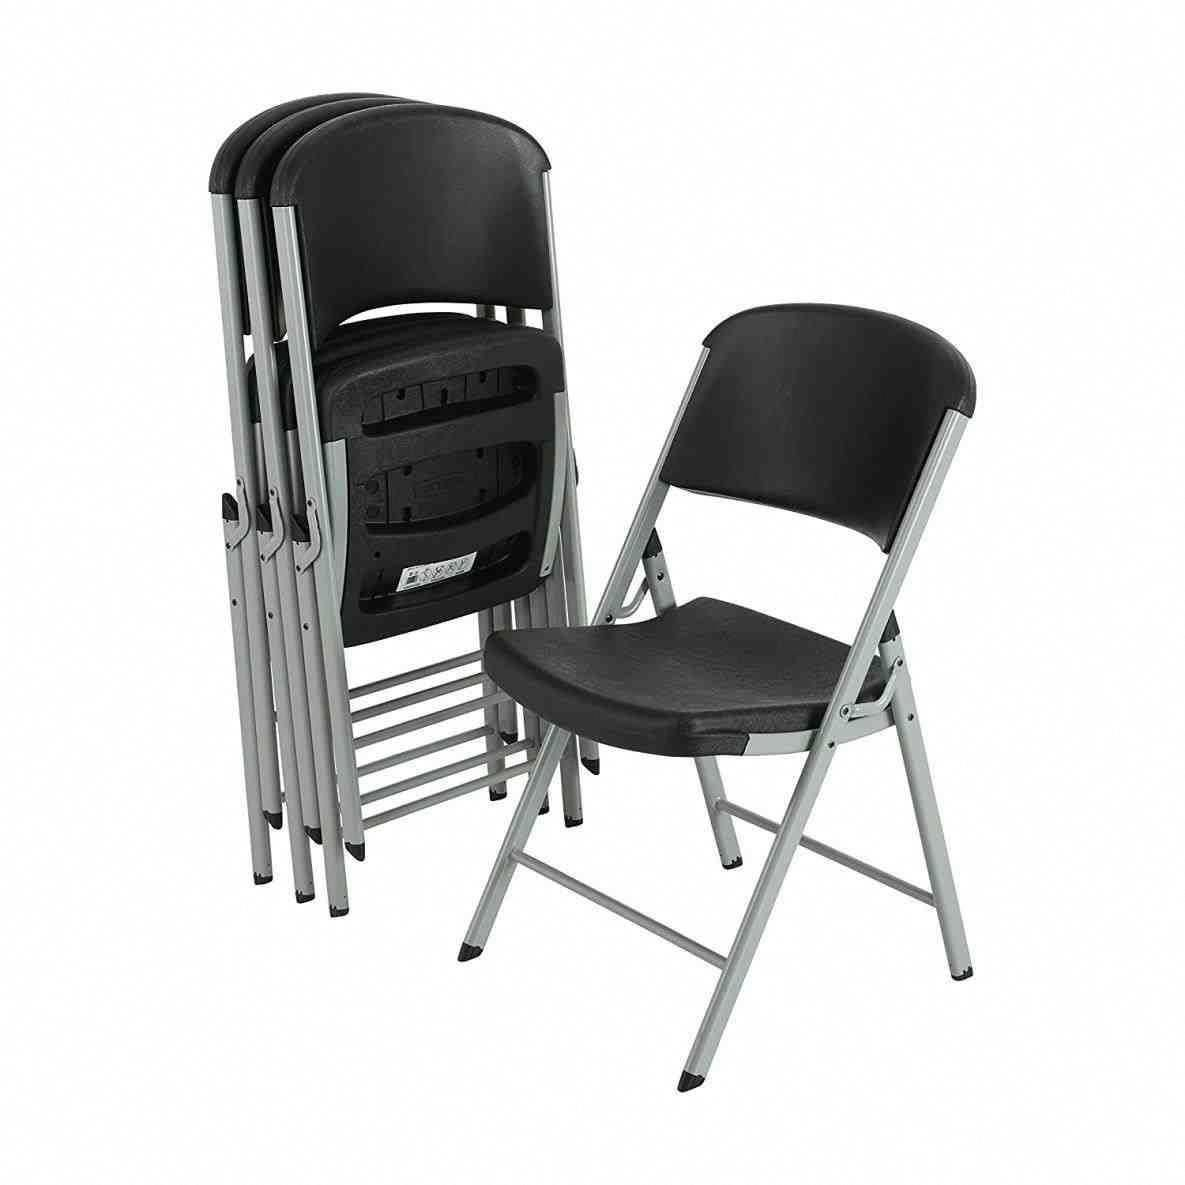 Chairs bed bath and beyond diningroomtablechairs